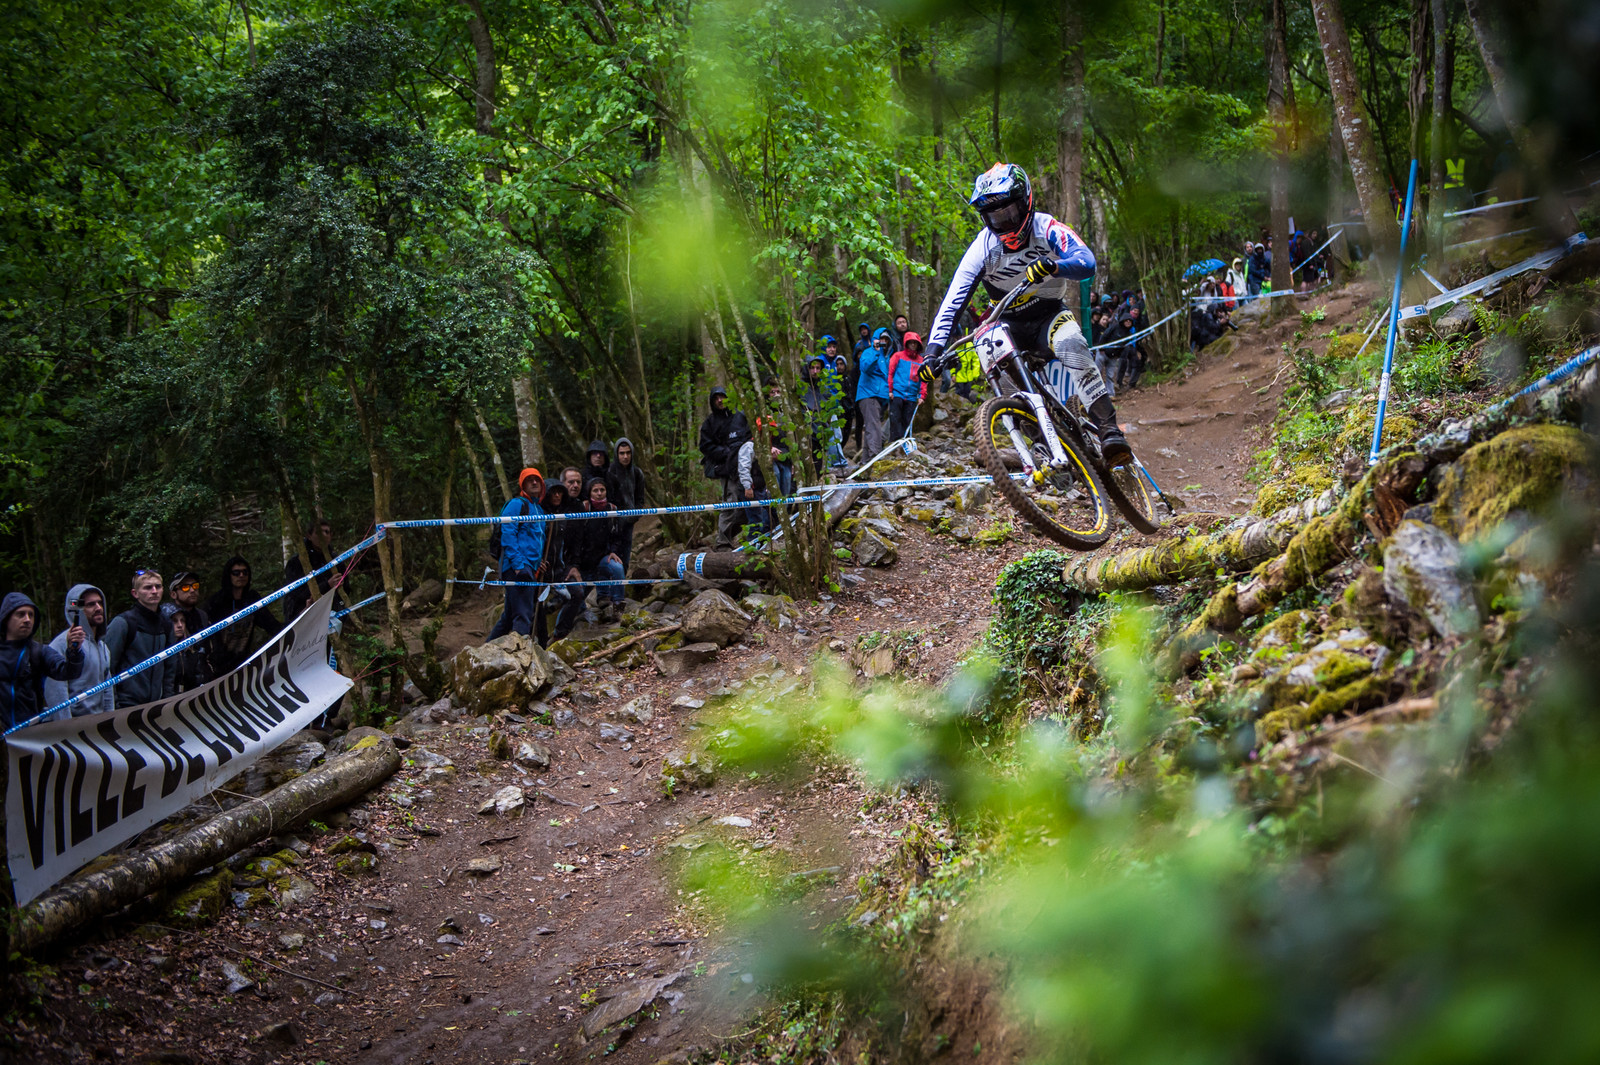 Sadly, the weather threw a big spanner in the works and robbed us of getting a few more answers here in Lourdes. Troy Brosnan's run was ruined - he still sent the gully gap though, as the true shredder that he is.